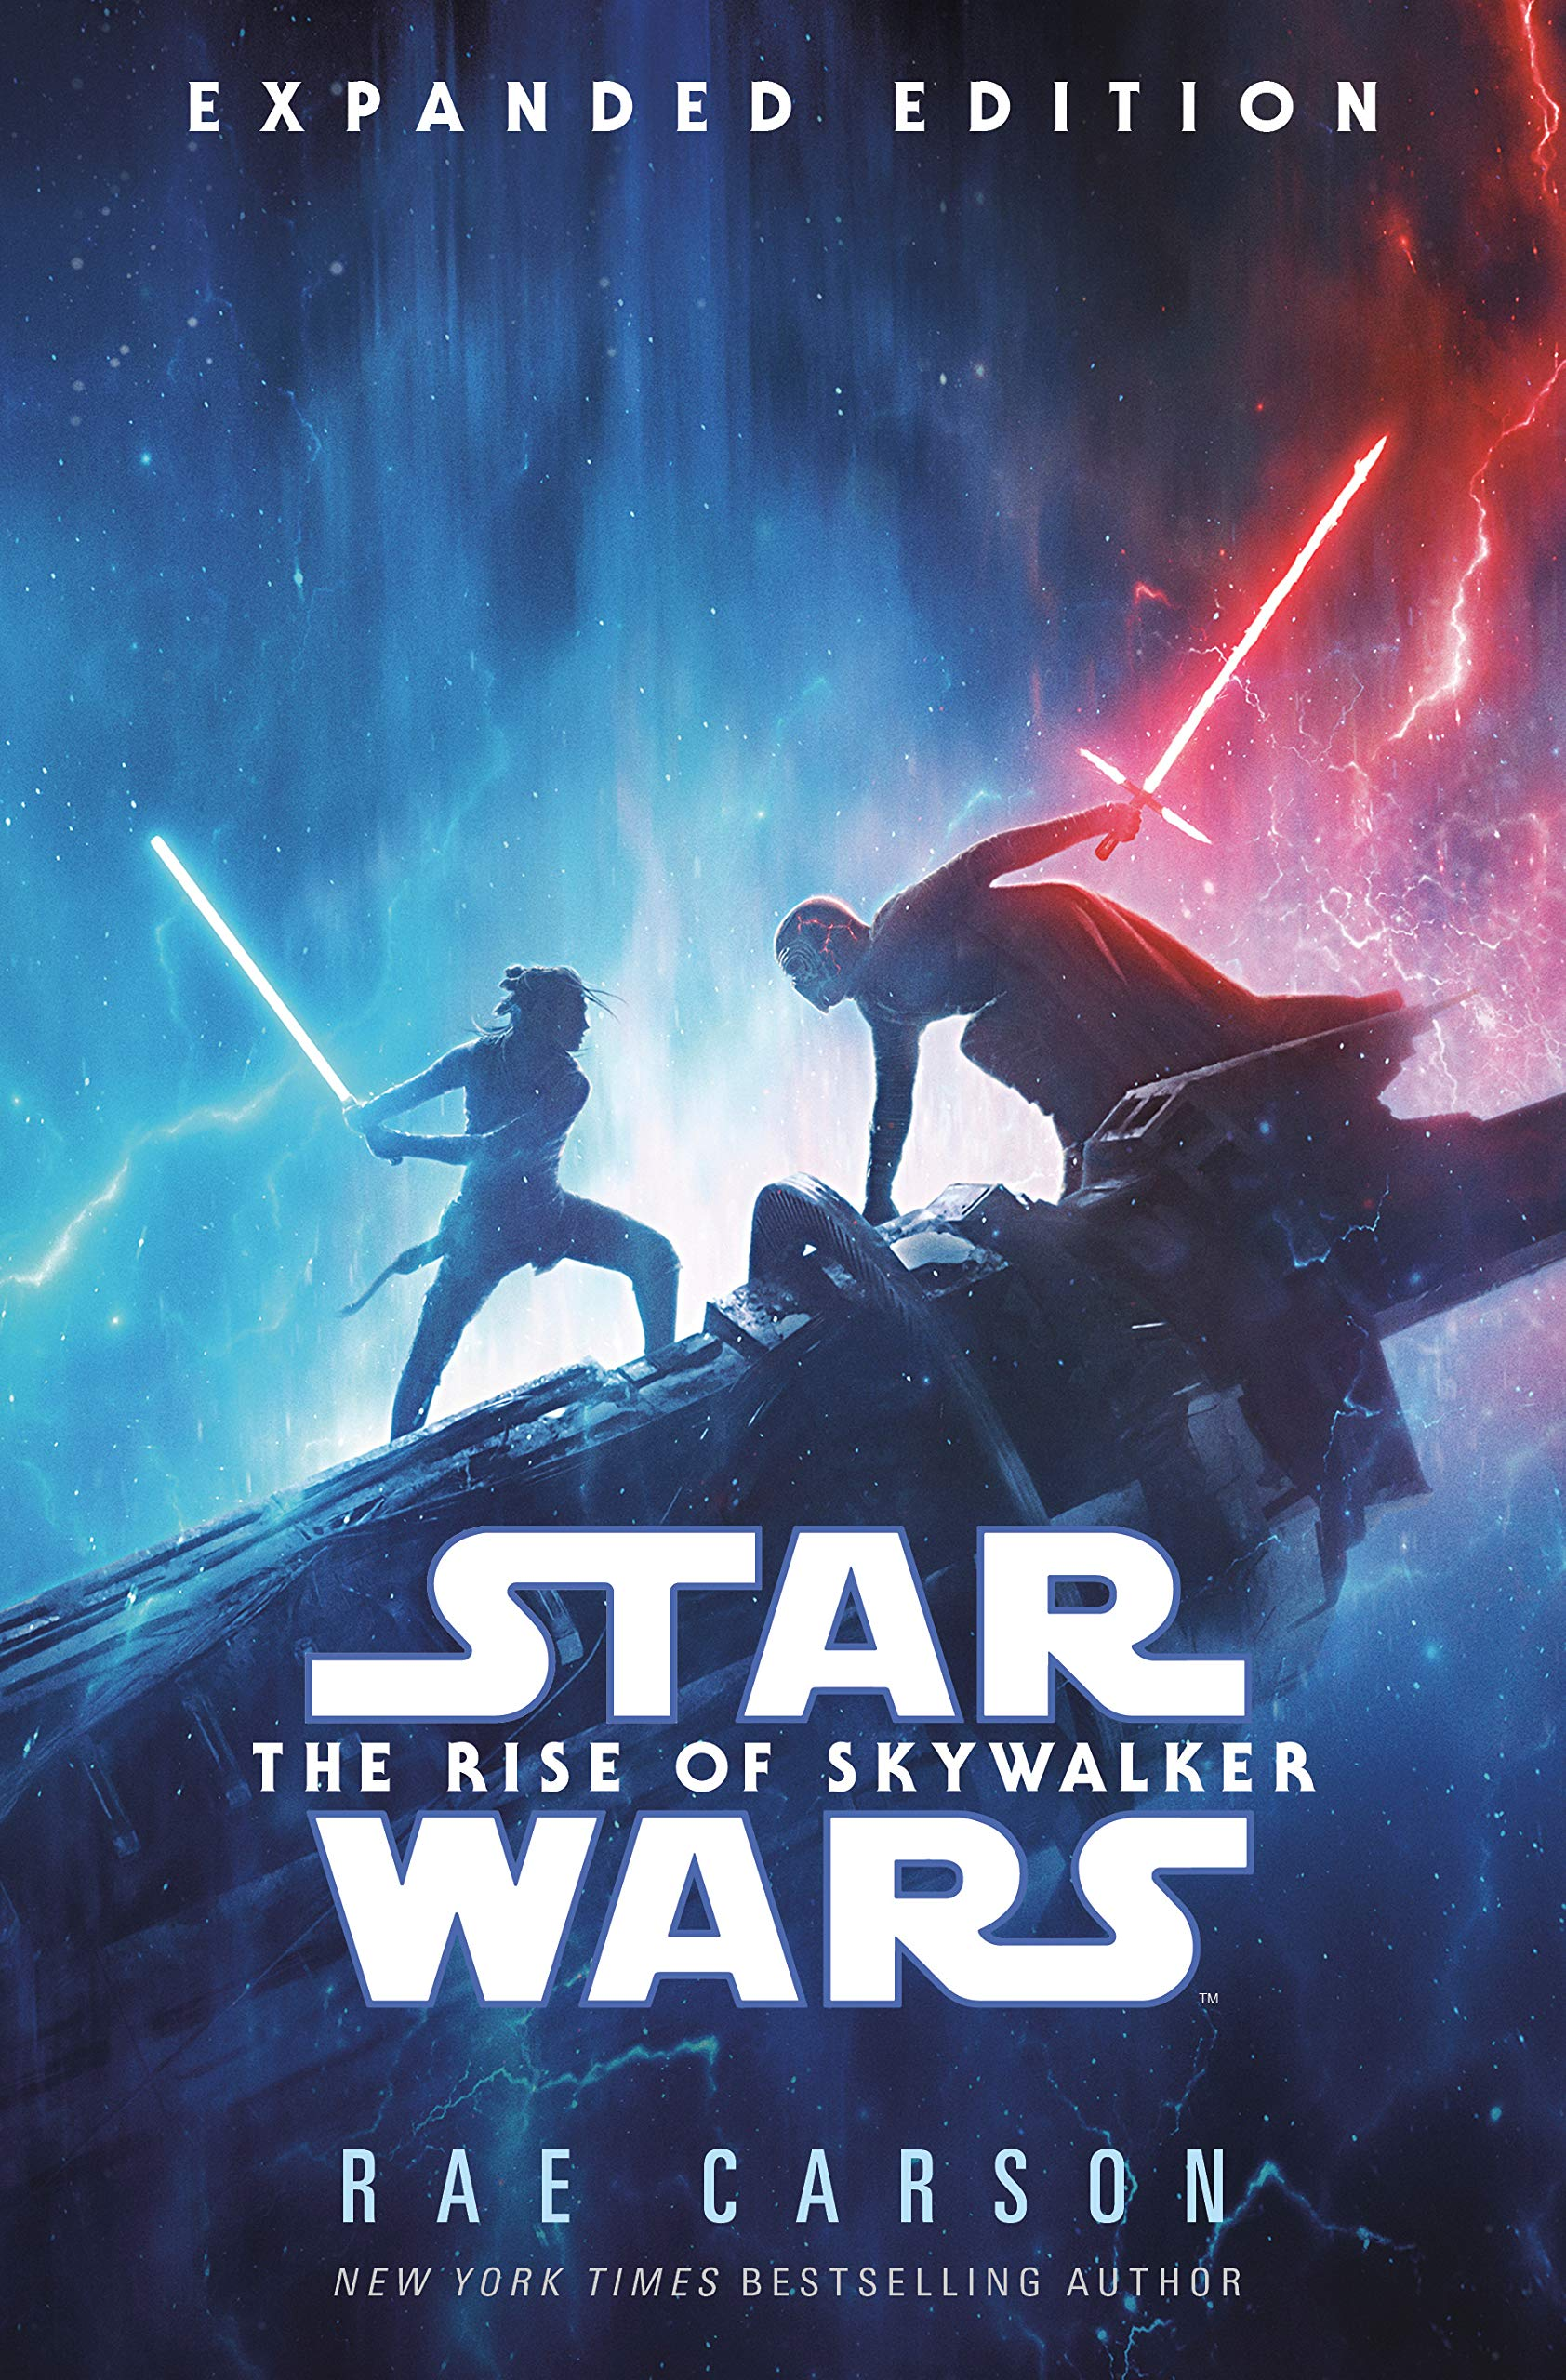 Star Wars The Rise of Skywalker Novel